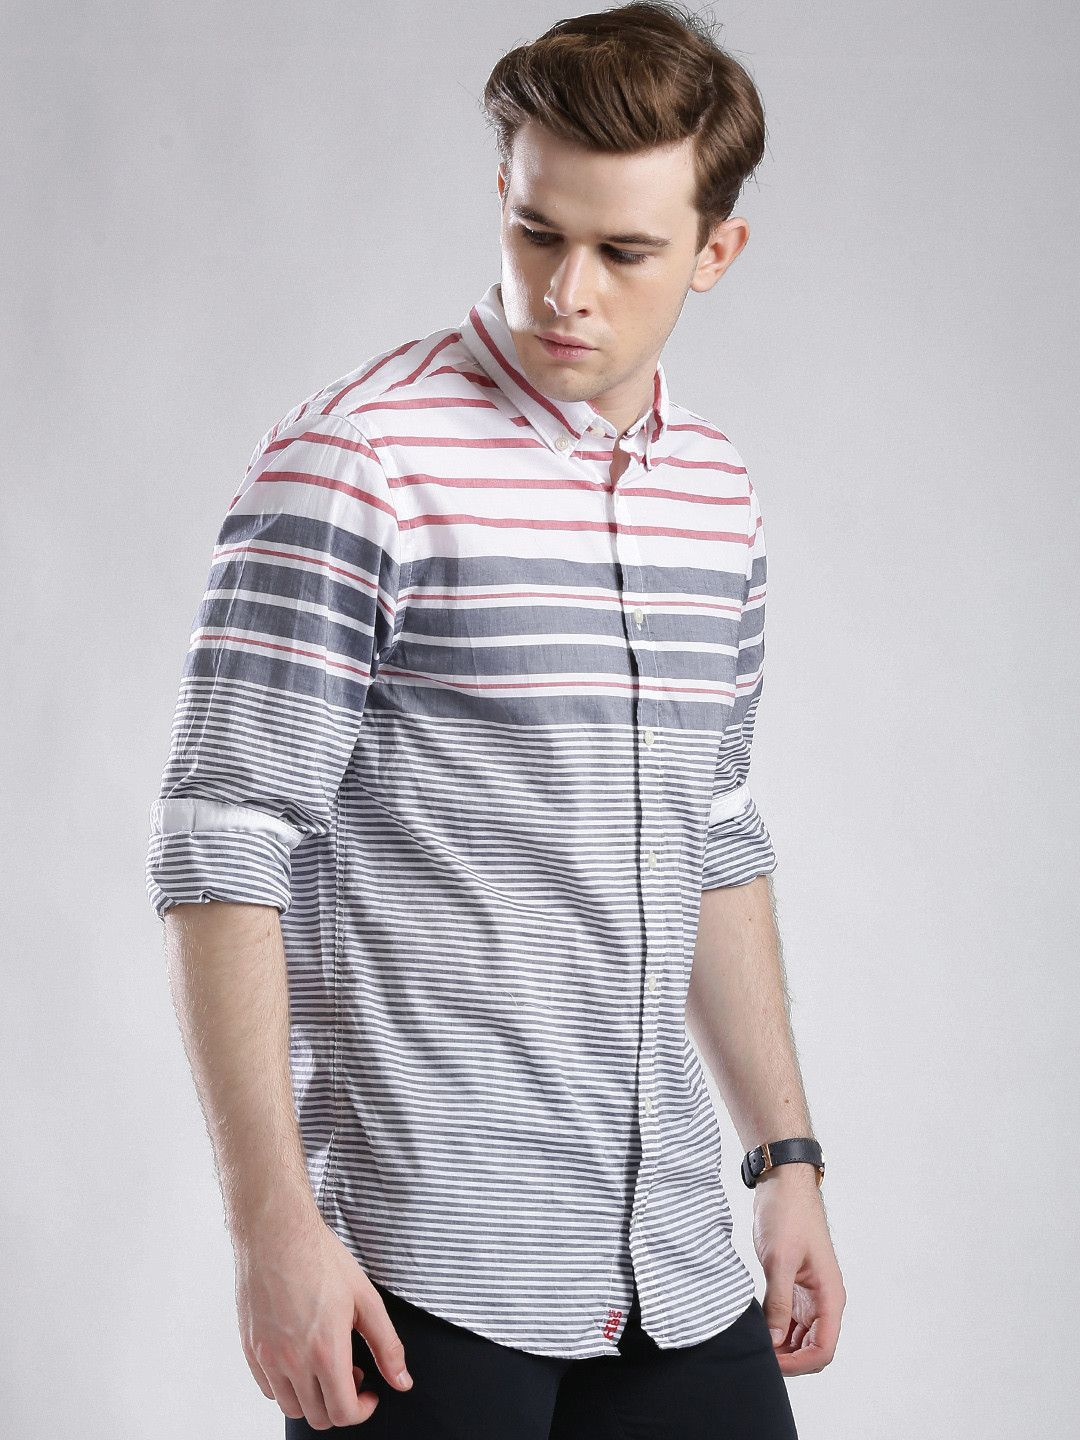 ce9be3c8a Buy Tommy Hilfiger Navy & White Striped New York Fit Casual Shirt - Shirts  for Men | Myntra